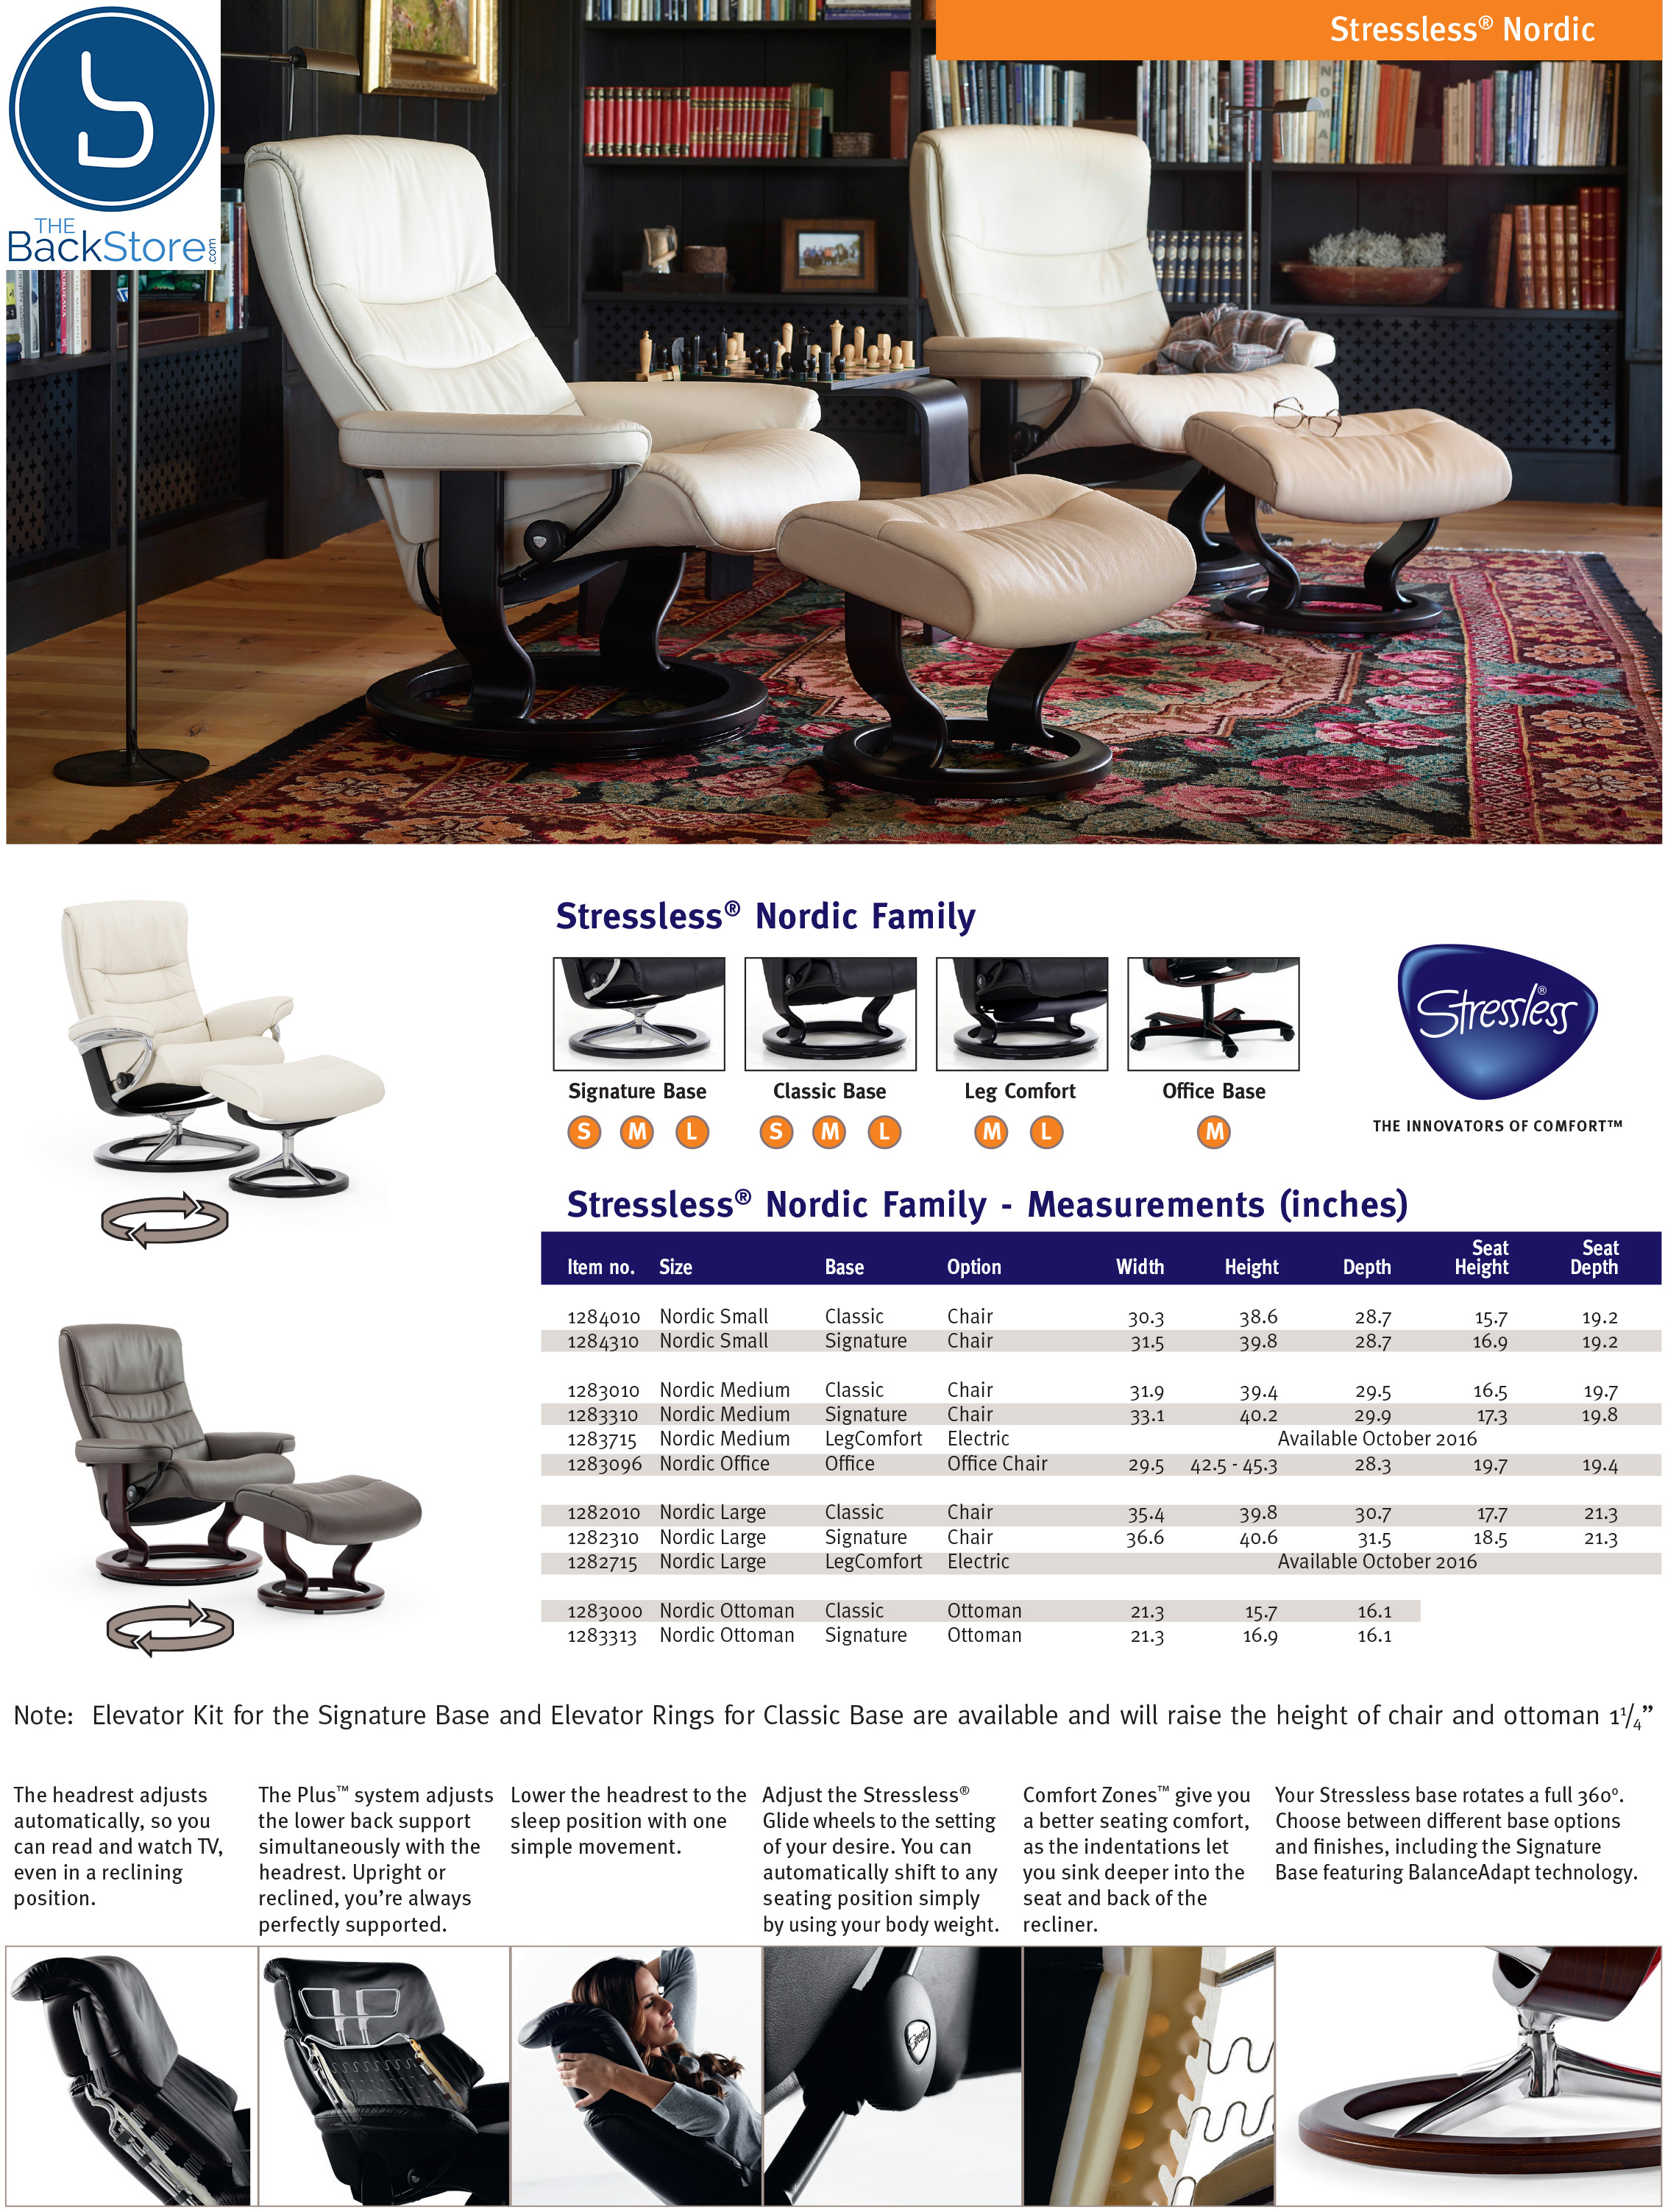 Stressless Nordic Legcomfort Stressless Nordic Power Legcomfort Recliner Chair By Ekornes